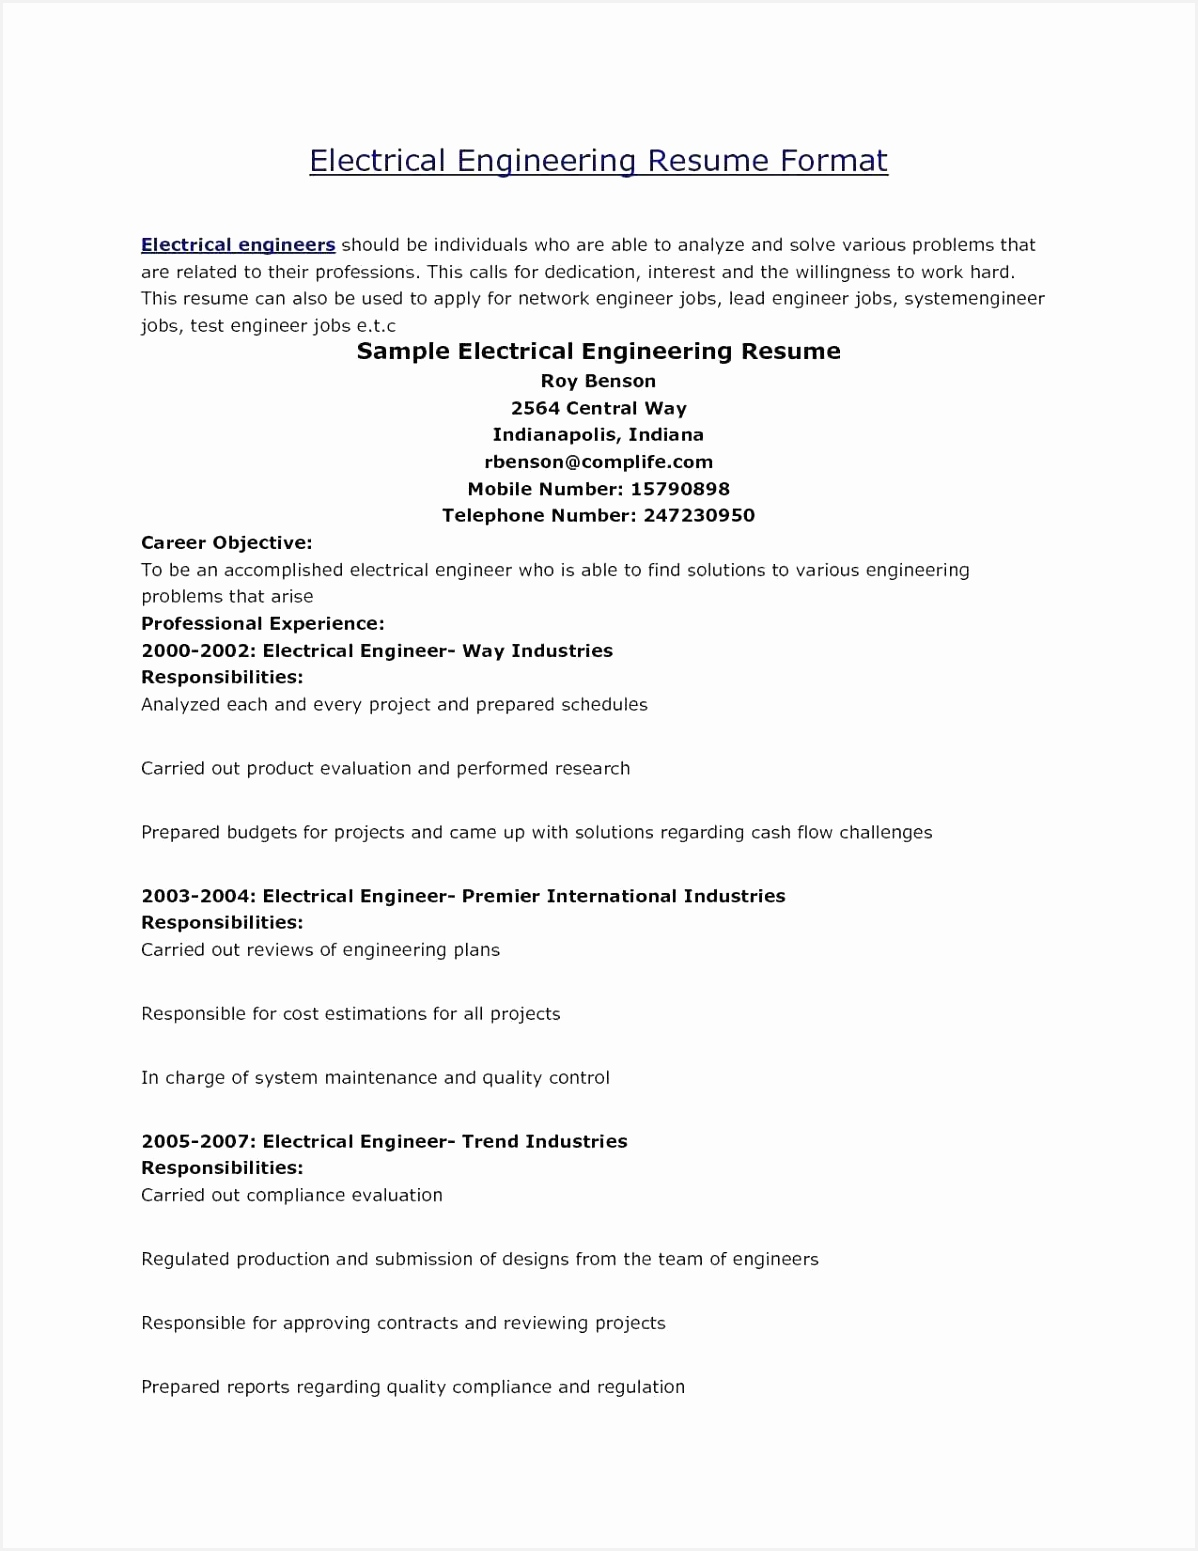 Contract Stress Engineer Sample Resume Nljaa Beautiful Resume format for Design Engineer In Mechanical Fresh Sample Resume Of Contract Stress Engineer Sample Resume Nwweq Best Of Student Resume Template Beautiful Best Pr Resume Template Elegant